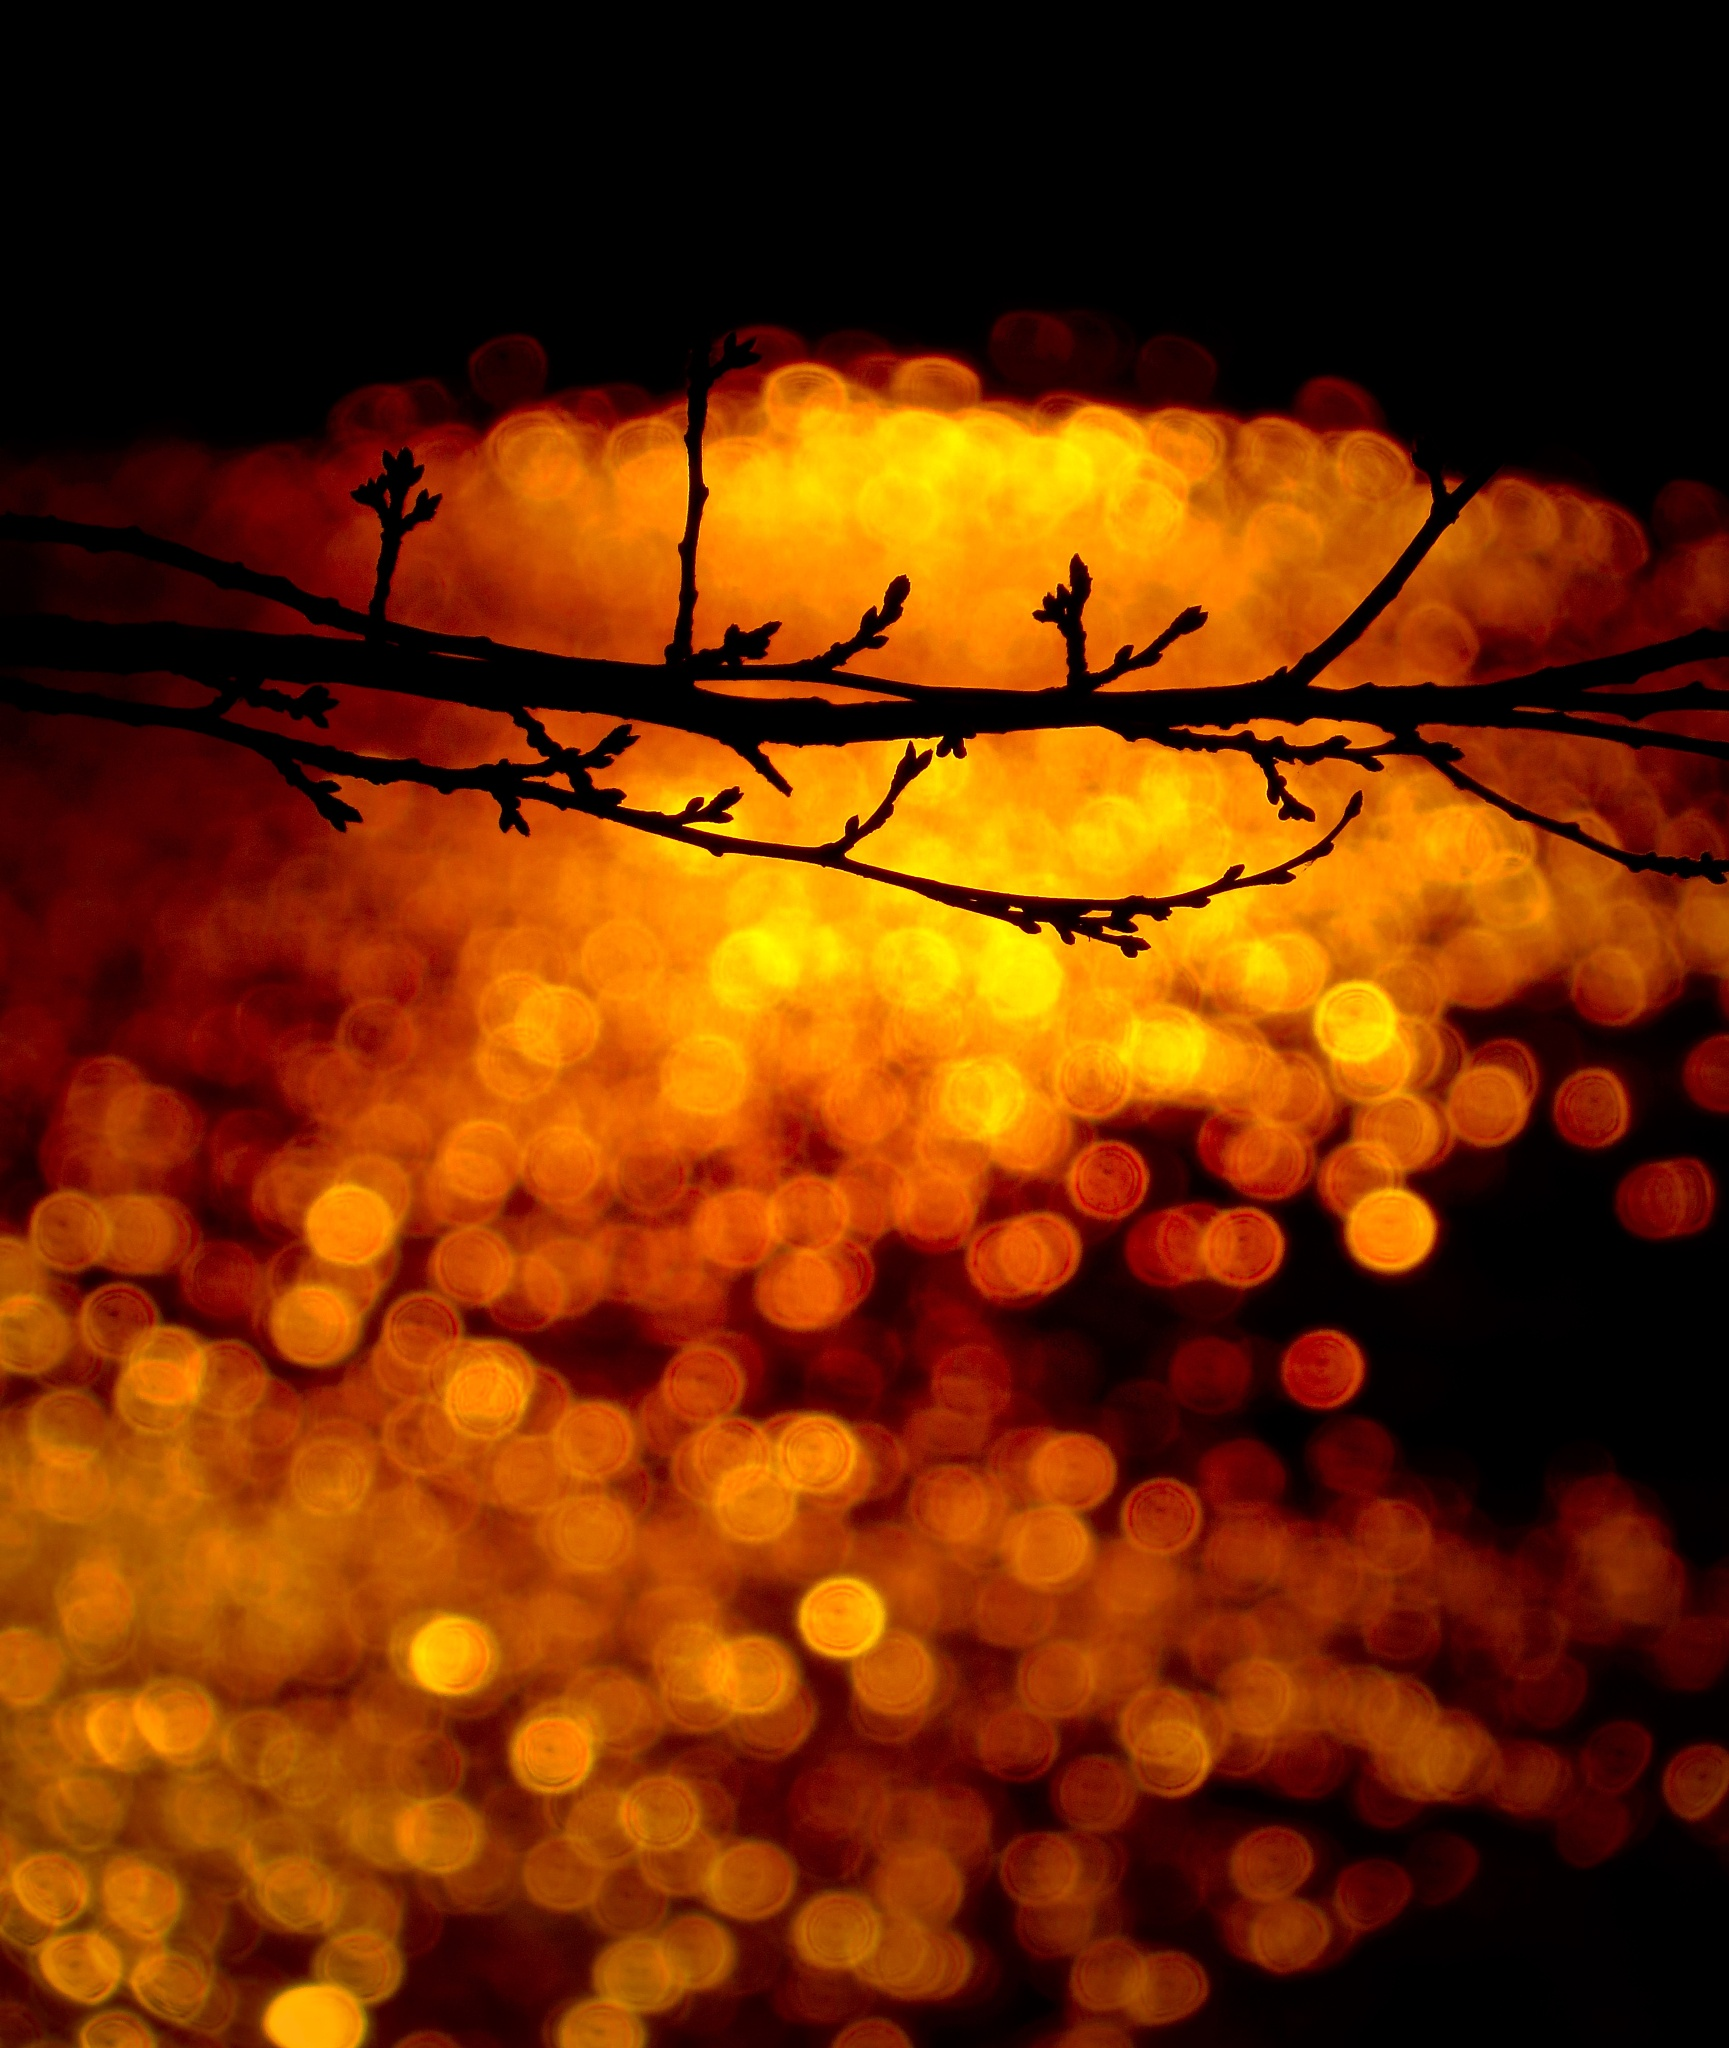 golden water highlighting the branches from the other night by David Devion